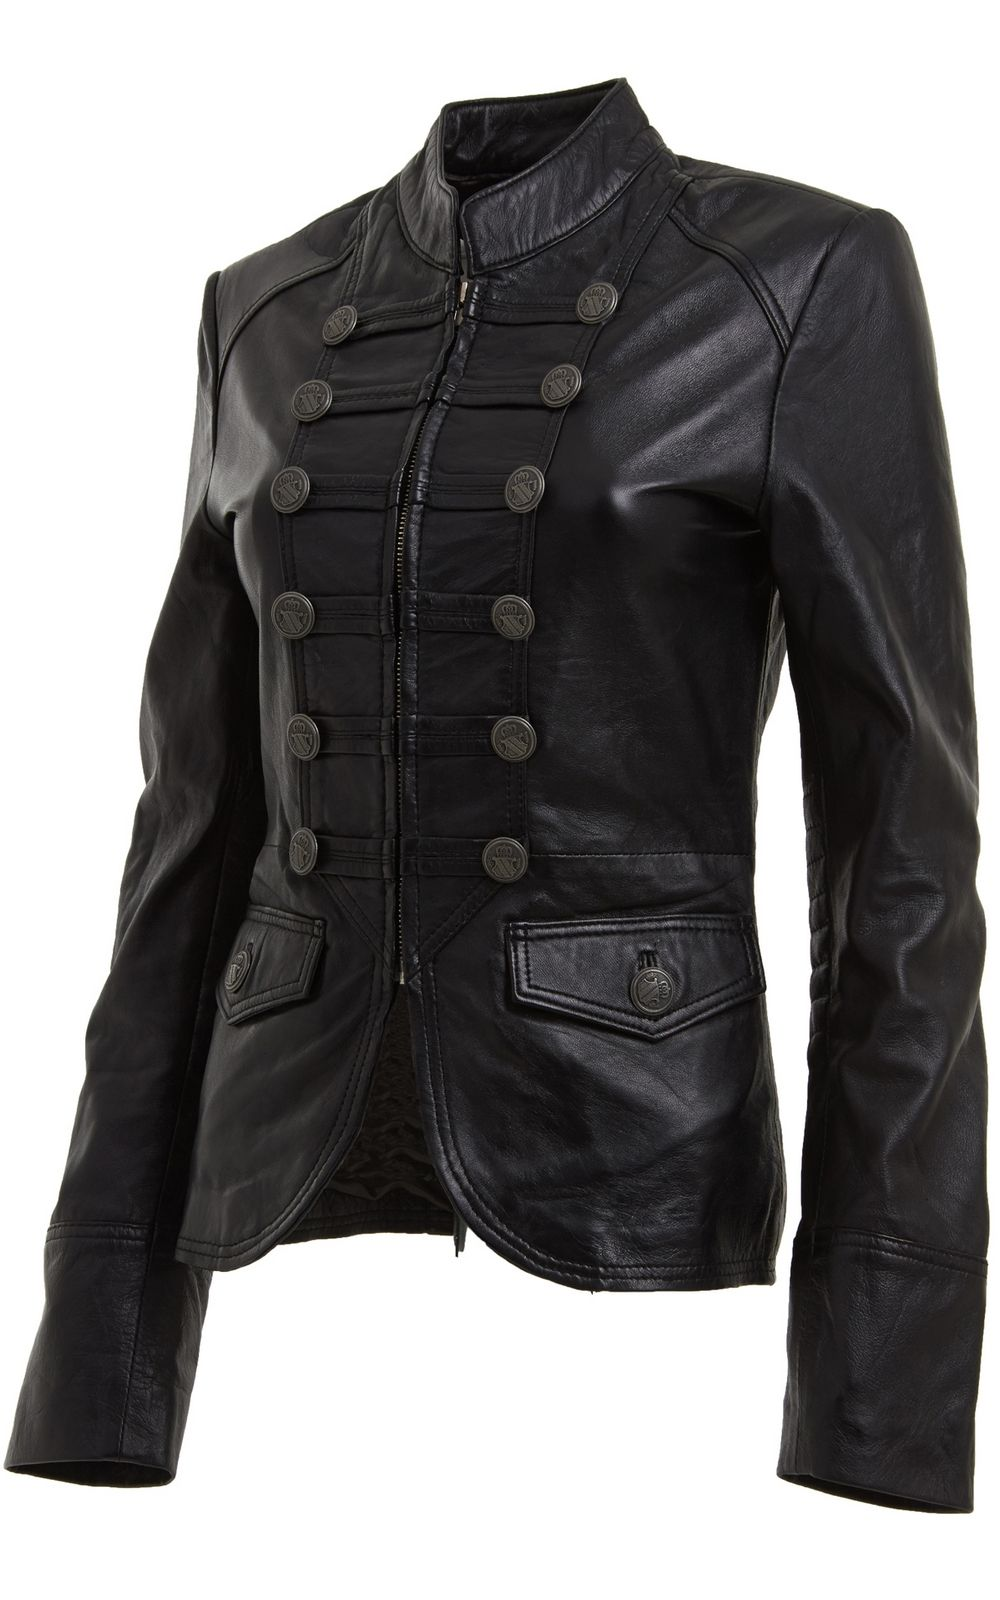 a5c3e3e9708 Womens Black Leather Blazer Jacket with Military Style front buttons ...